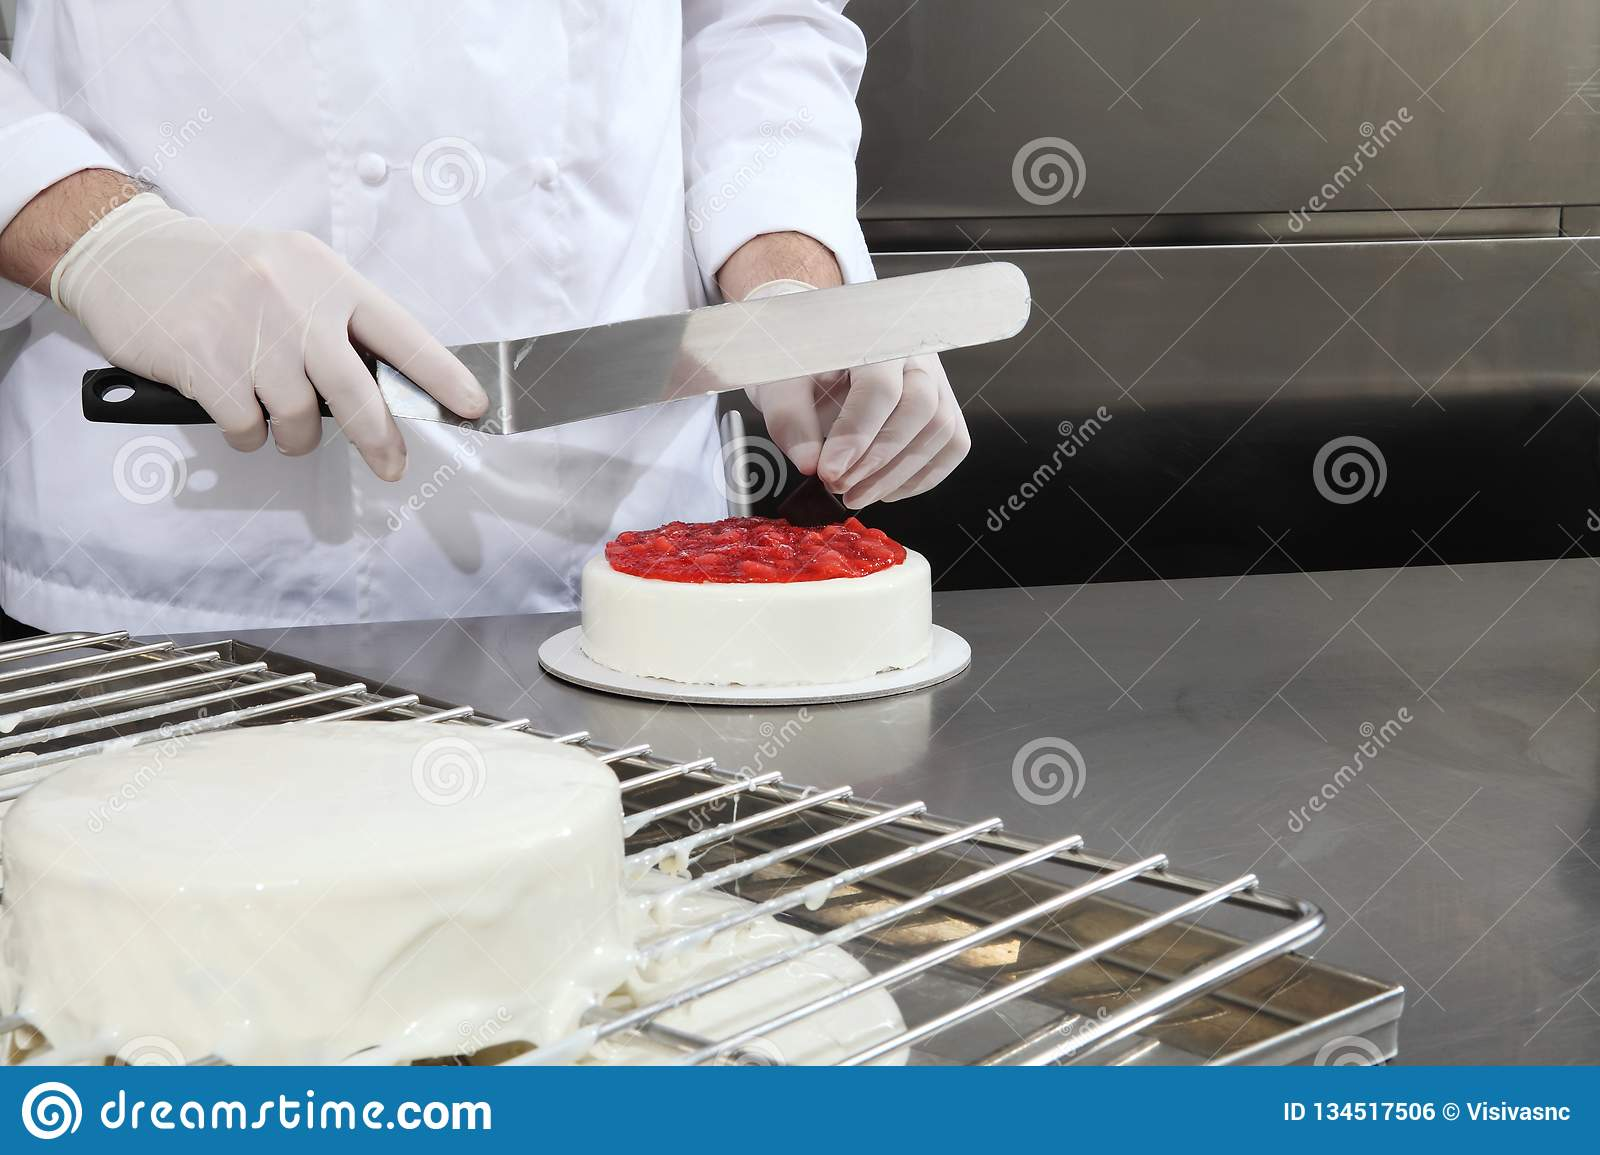 Hands Pastry Chef Prepares A Cake Cover With Icing And